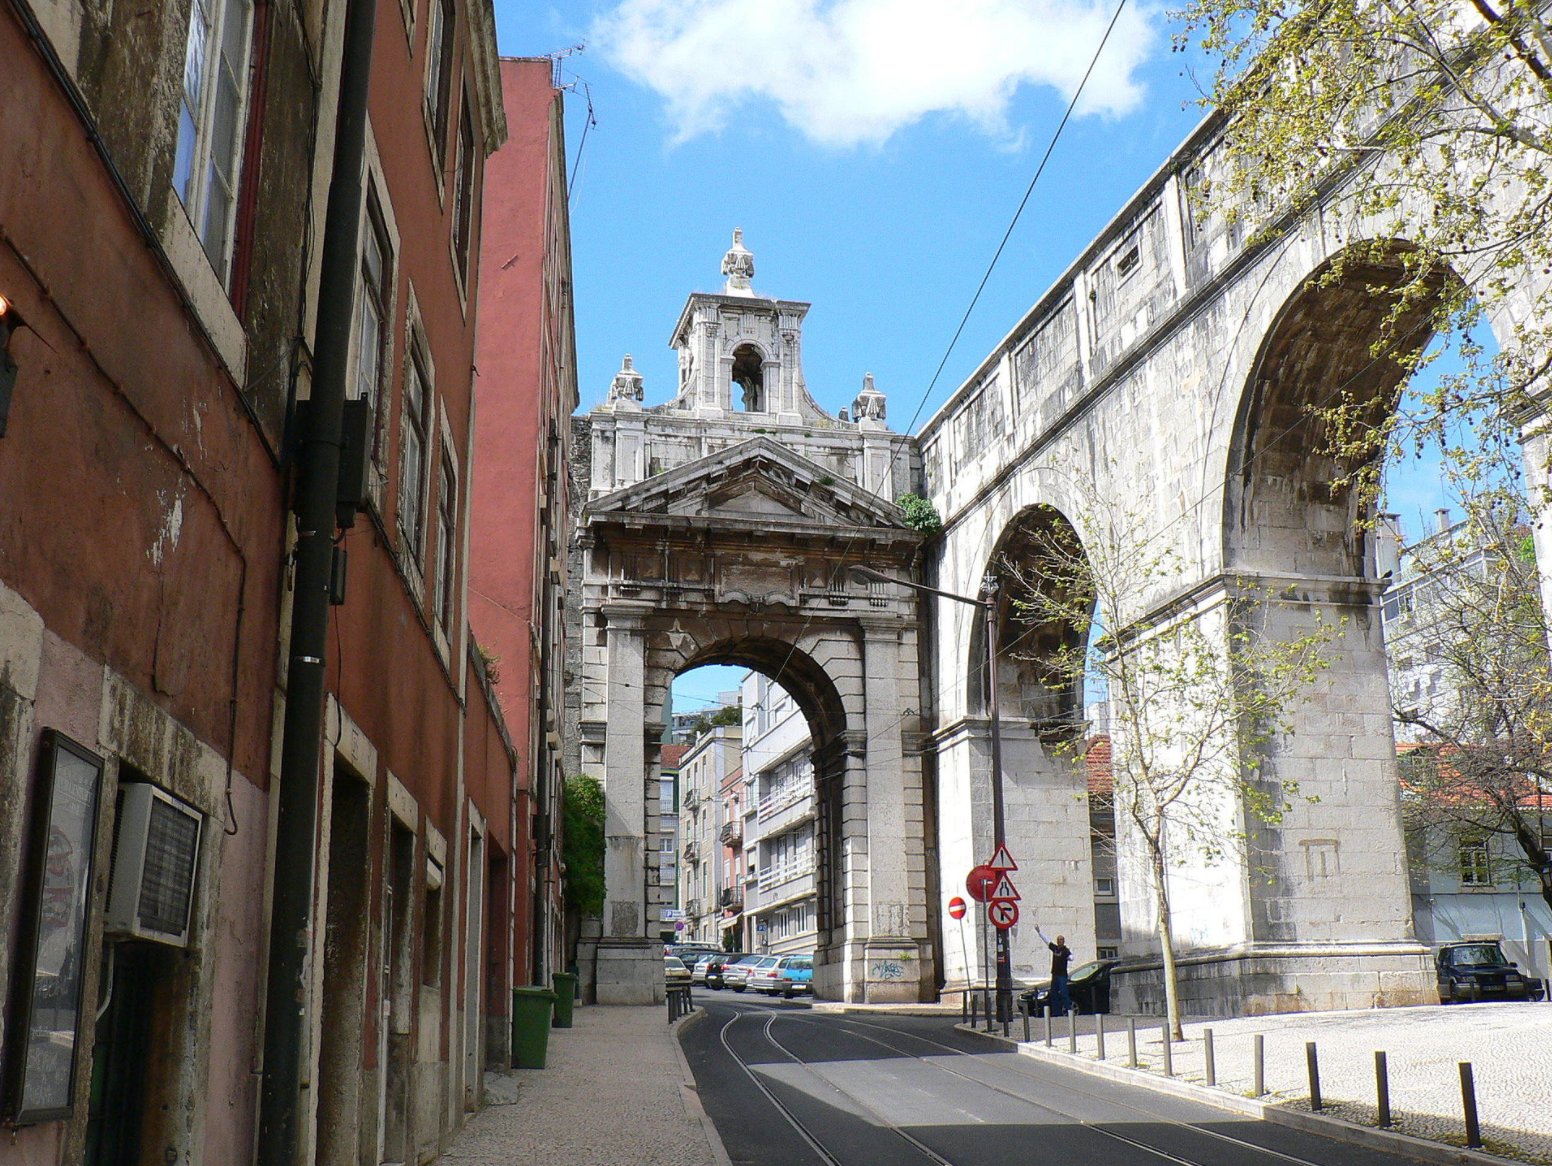 """The Águas Livres Aqueduct (Portuguese: Aqueduto das Águas Livres, pronounced: [ɐkɨˈdutu dɐʃ ˈaɡwɐʃ ˈlivɾɨʃ], """"Aqueduct of the Free Waters"""") is a historic aqueduct in the city of Lisbon, Portugal. It is one of the most remarkable examples of 18th-century Portuguese engineering. The main course of the aqueduct covers 18 km, but the whole network of canals extends through nearly 58 km."""